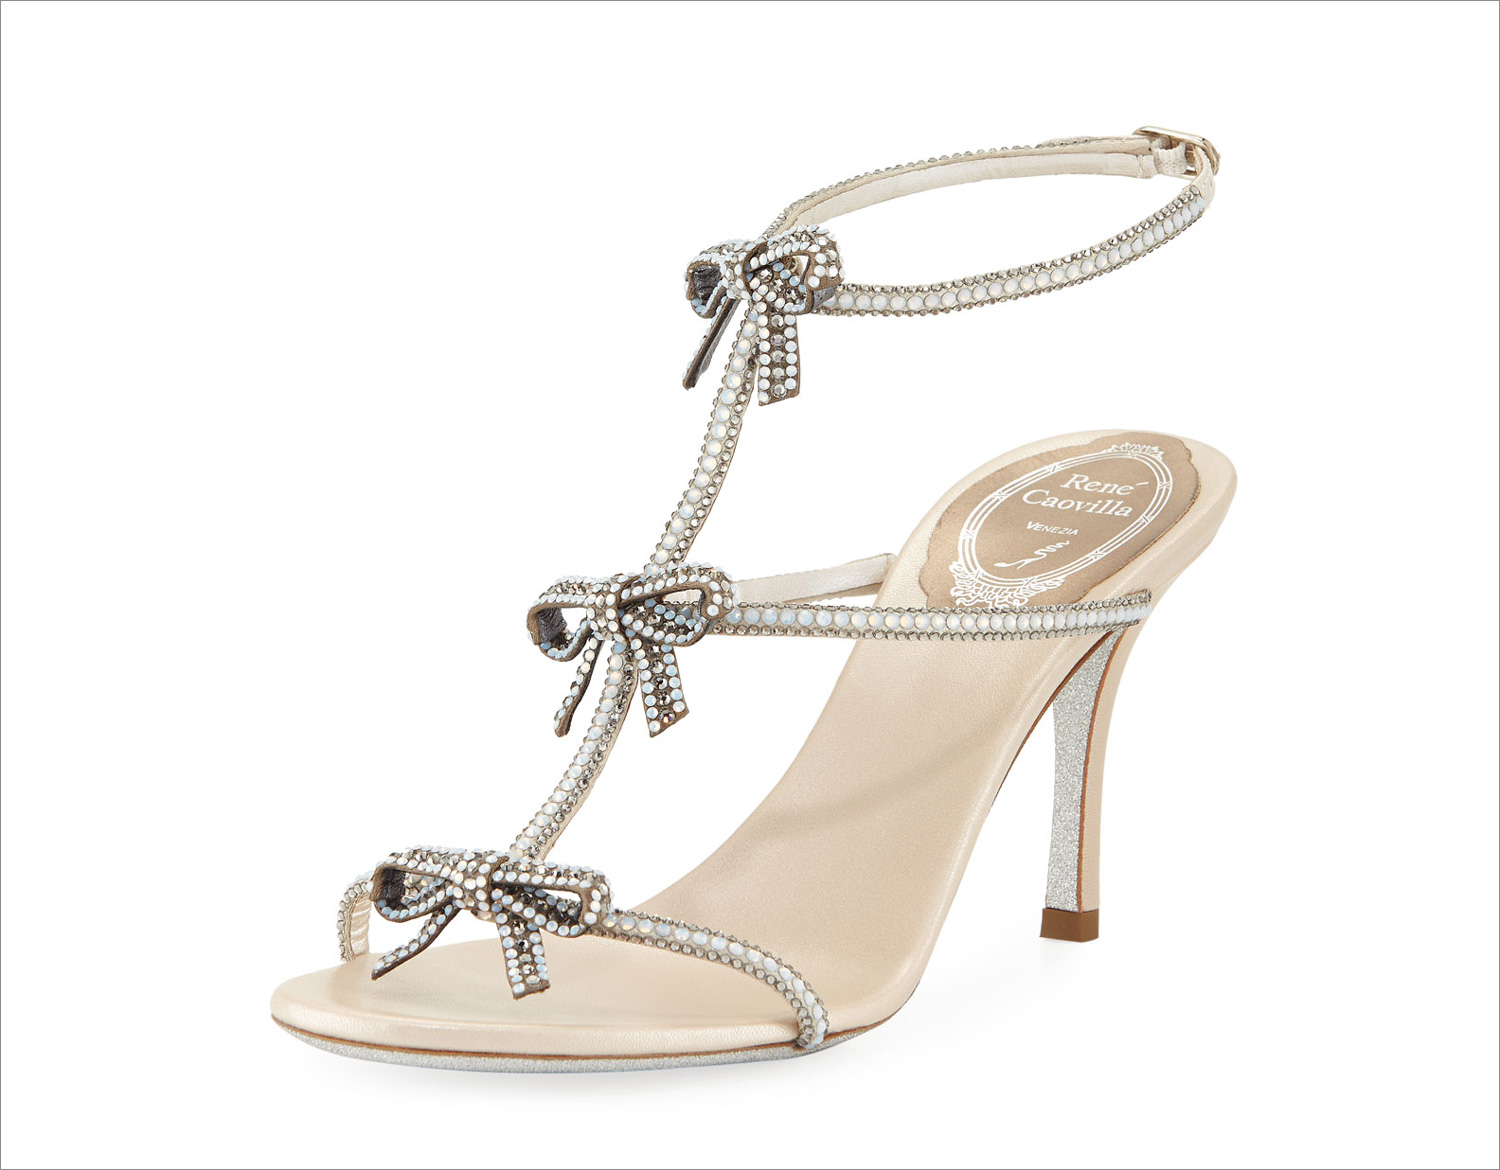 Rene Caovilla wedding shoes bow embellished sandal crystals popular wedding heel ideas